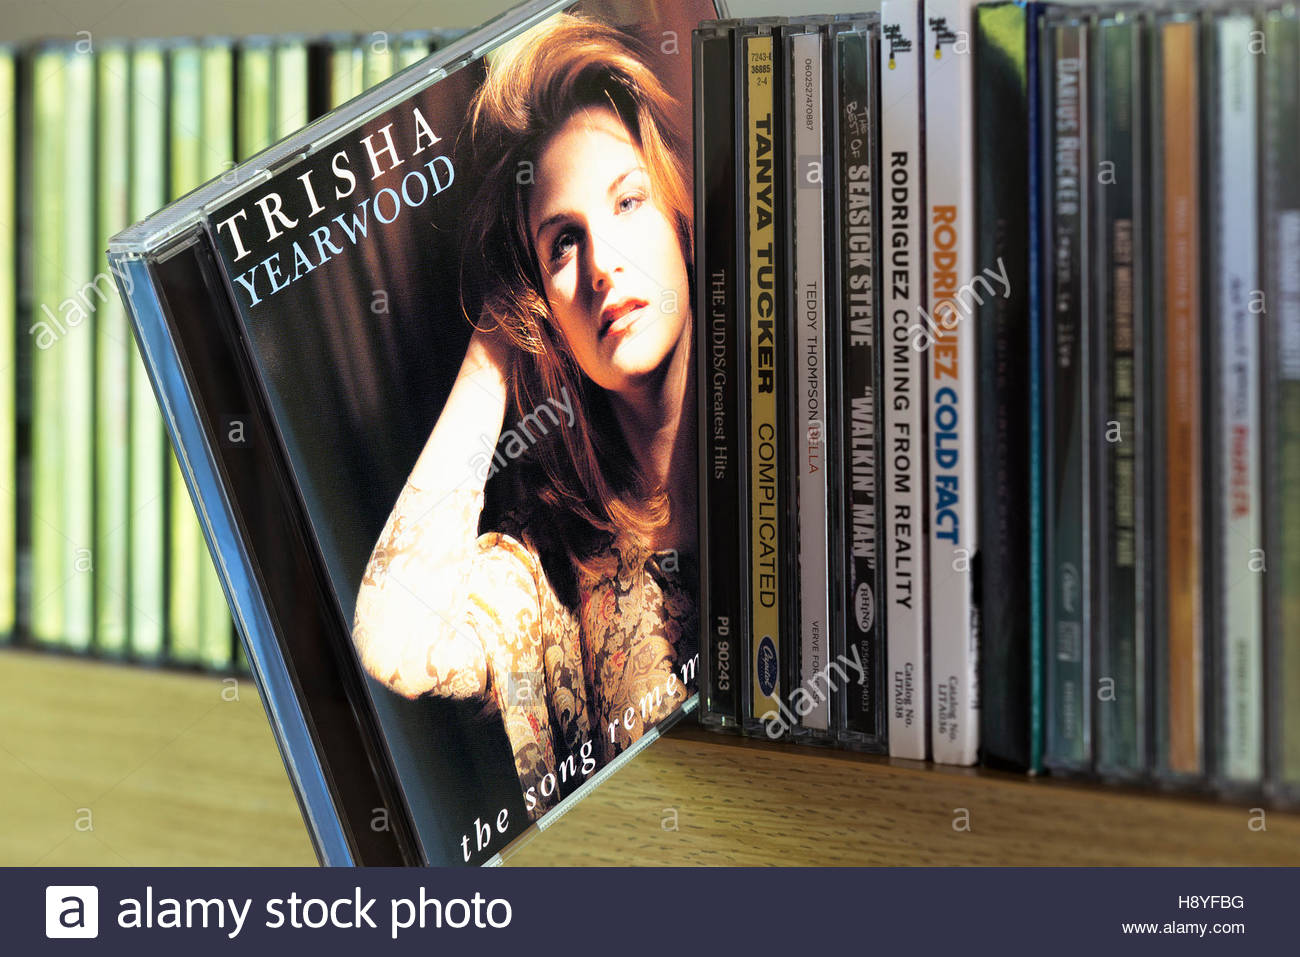 The Song Remembers When, Trisha Yearwood CD pulled out from among other CD's on a shelf Stock Photo